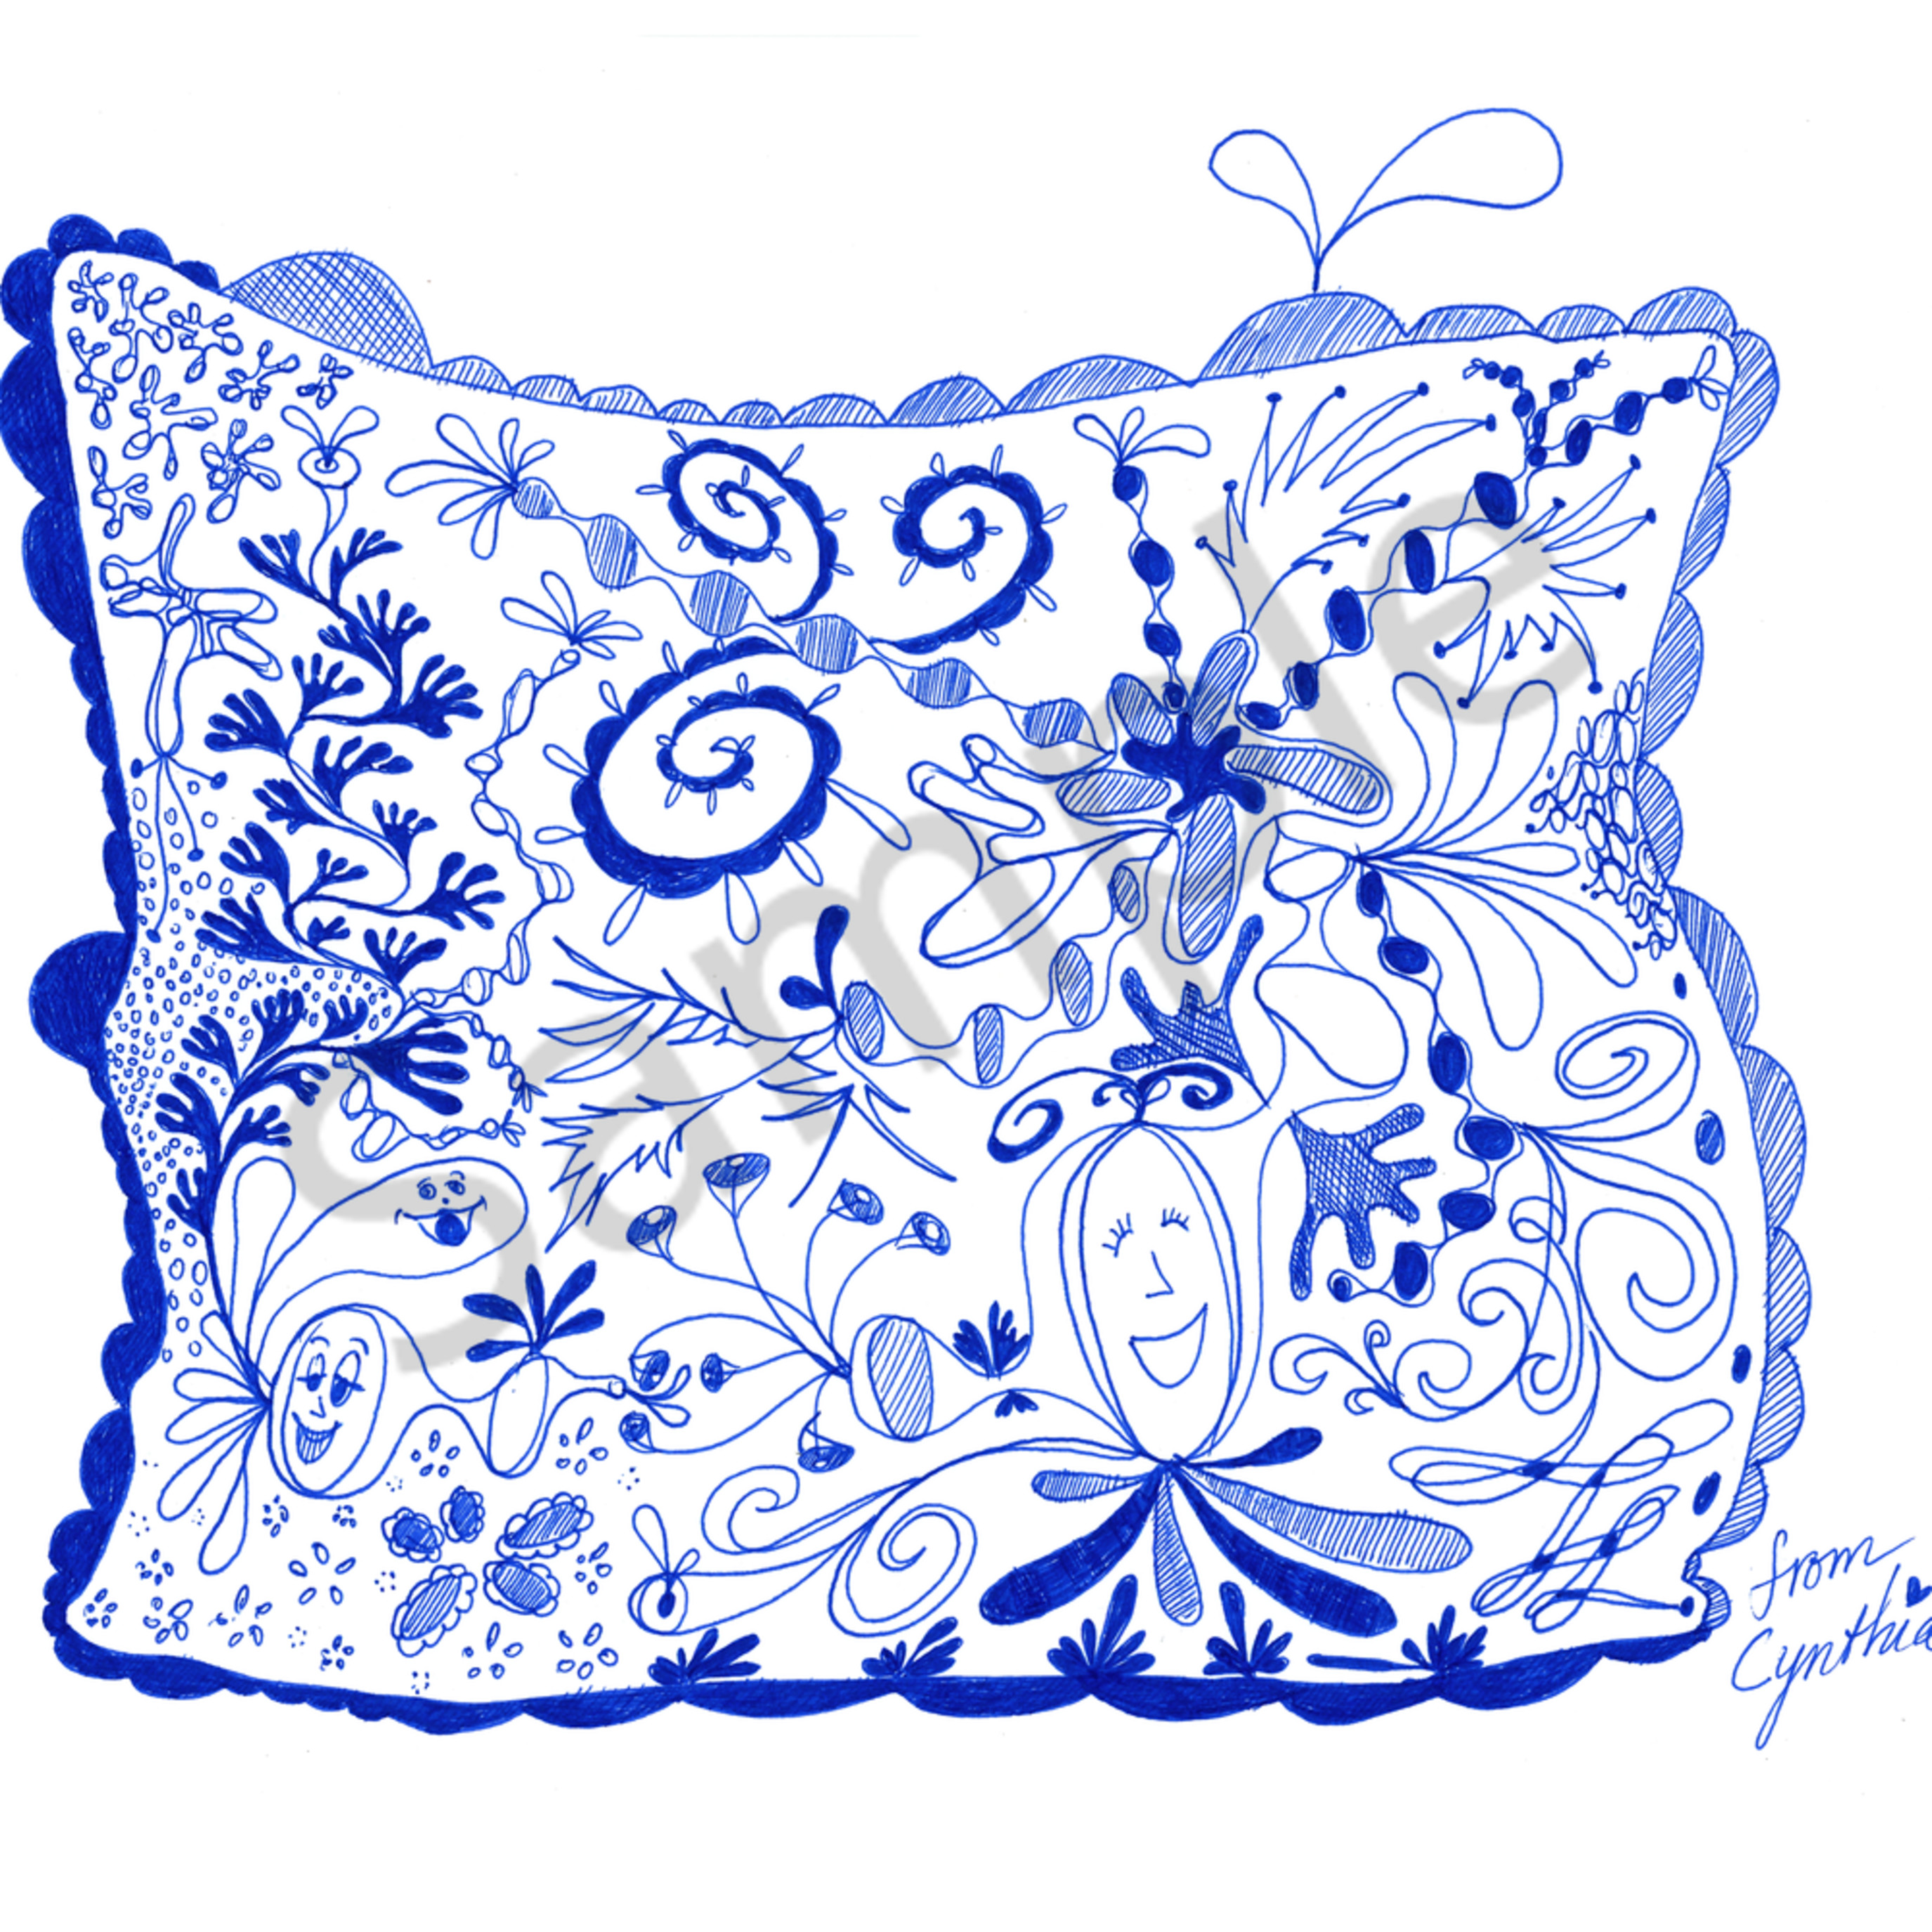 Spring pillow march 2020 orn7jr